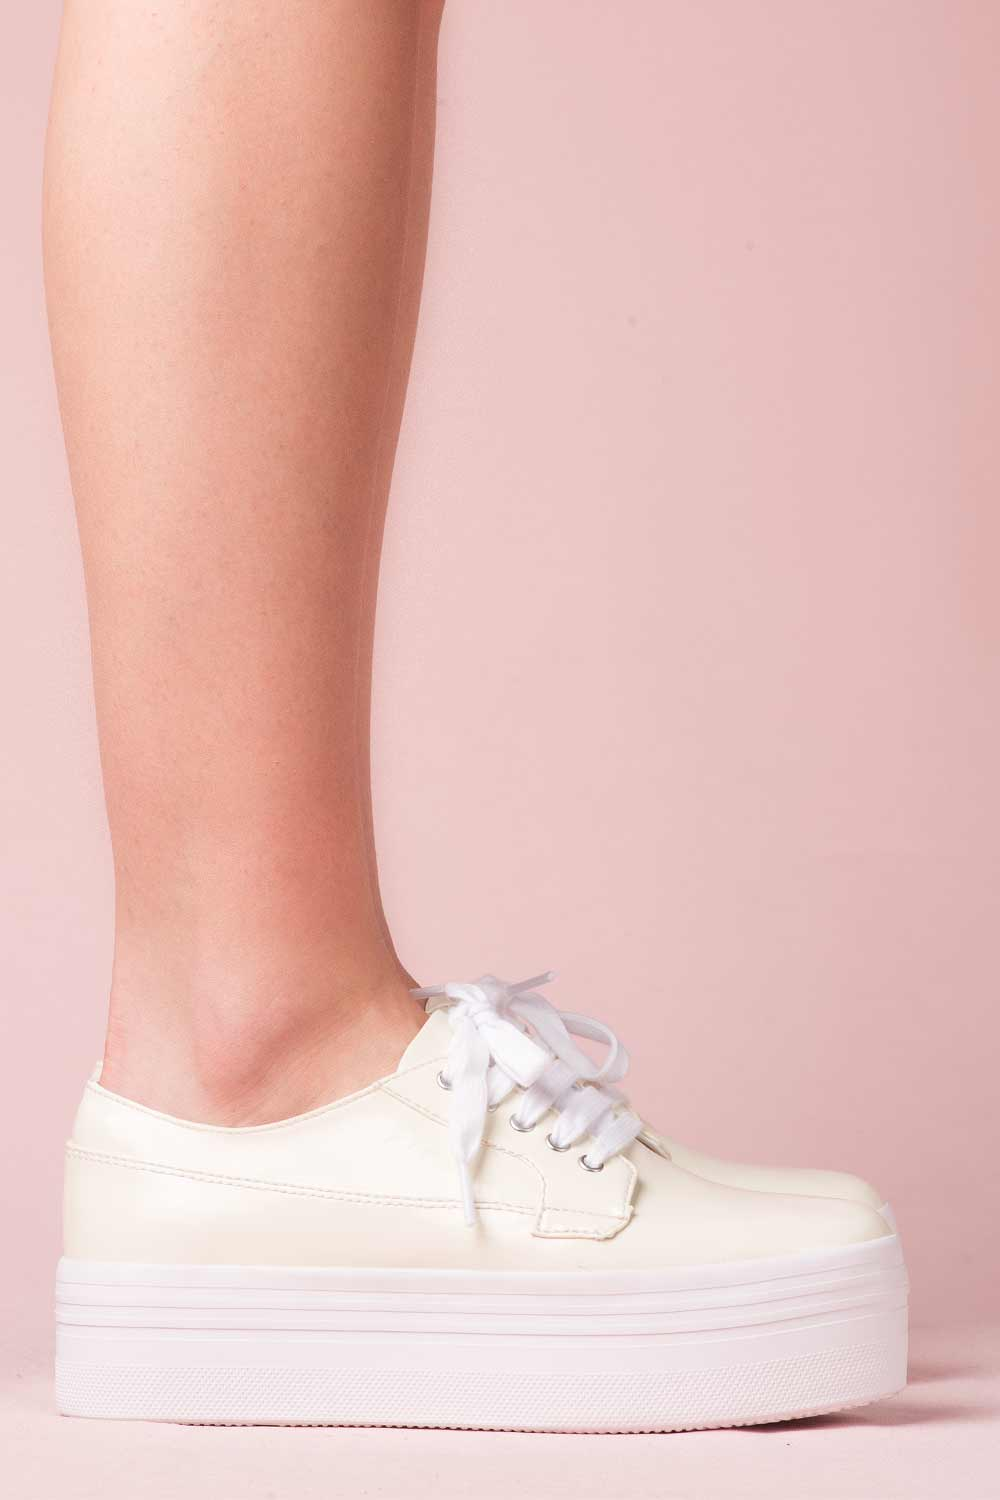 JEFFREY CAMPBELL SNEAKERS - LOUSIE OFF WHITE